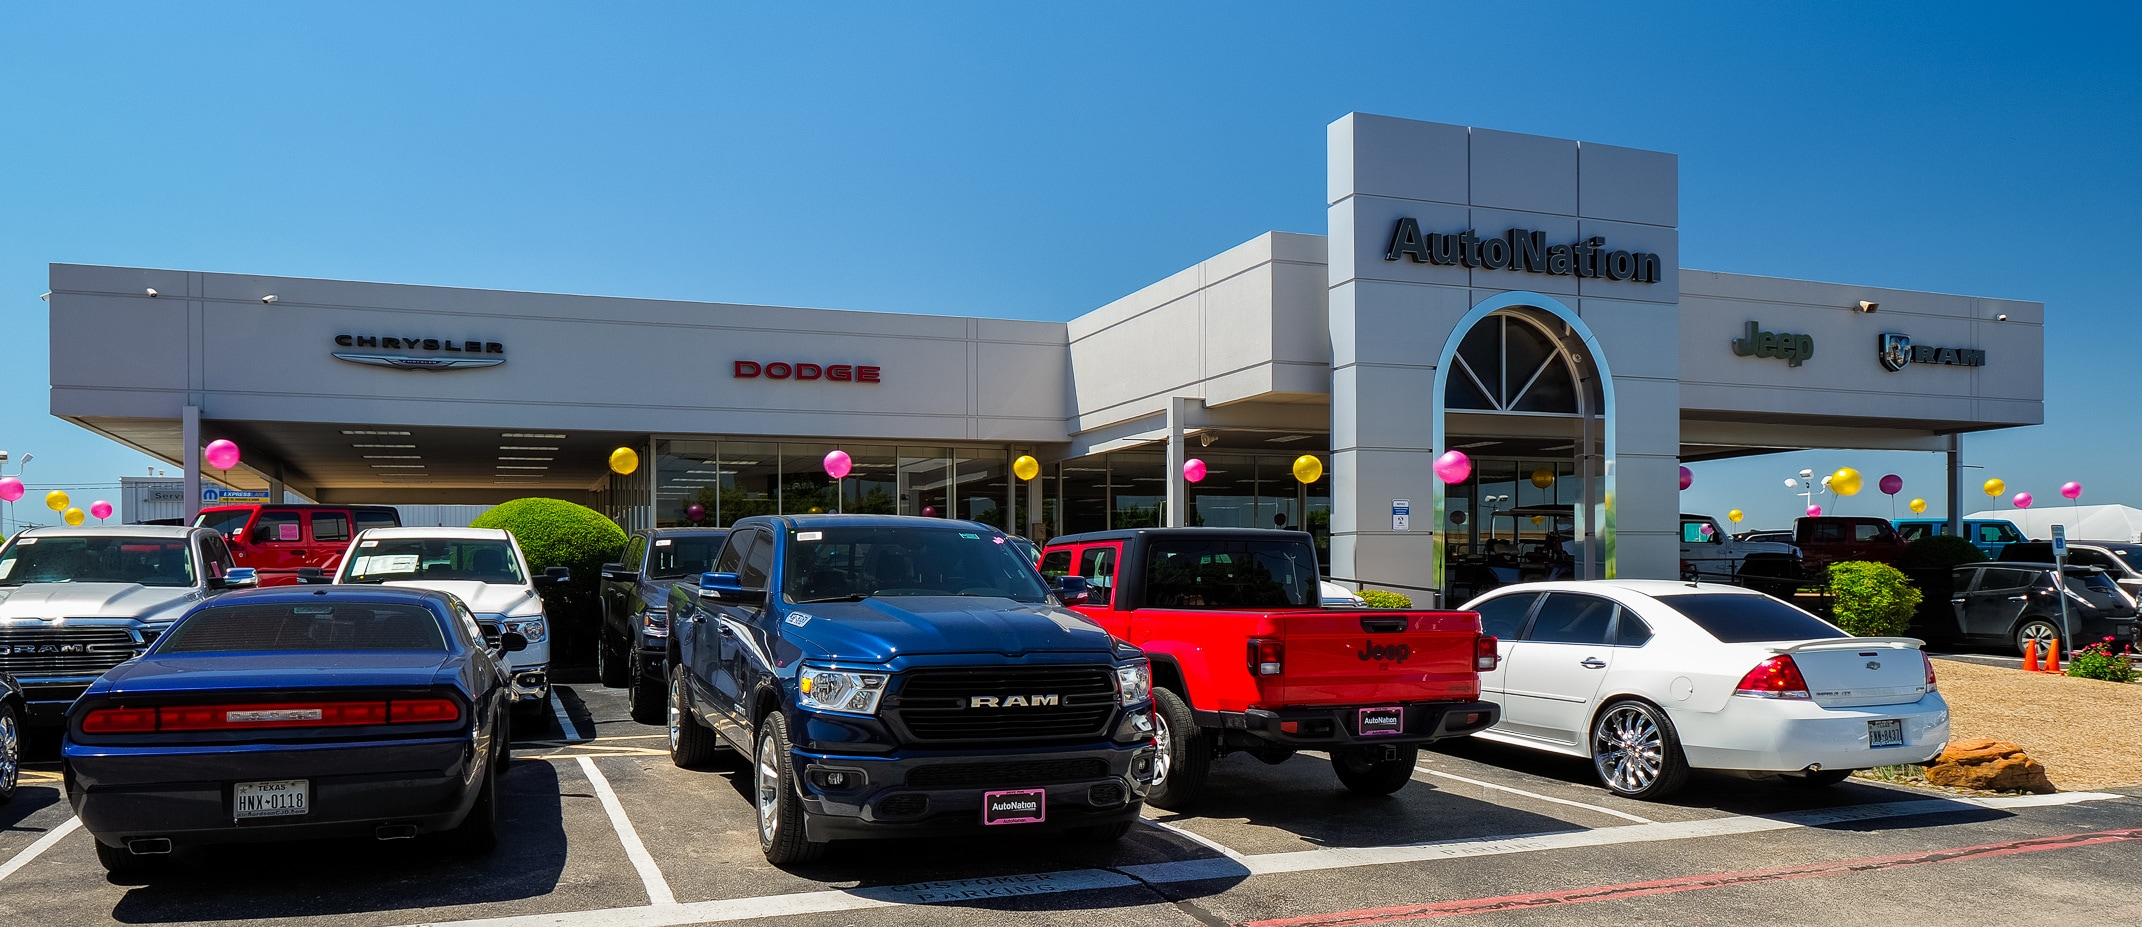 Exterior view of Autonation Chrysler Dodge Jeep Ram North Richland Hills